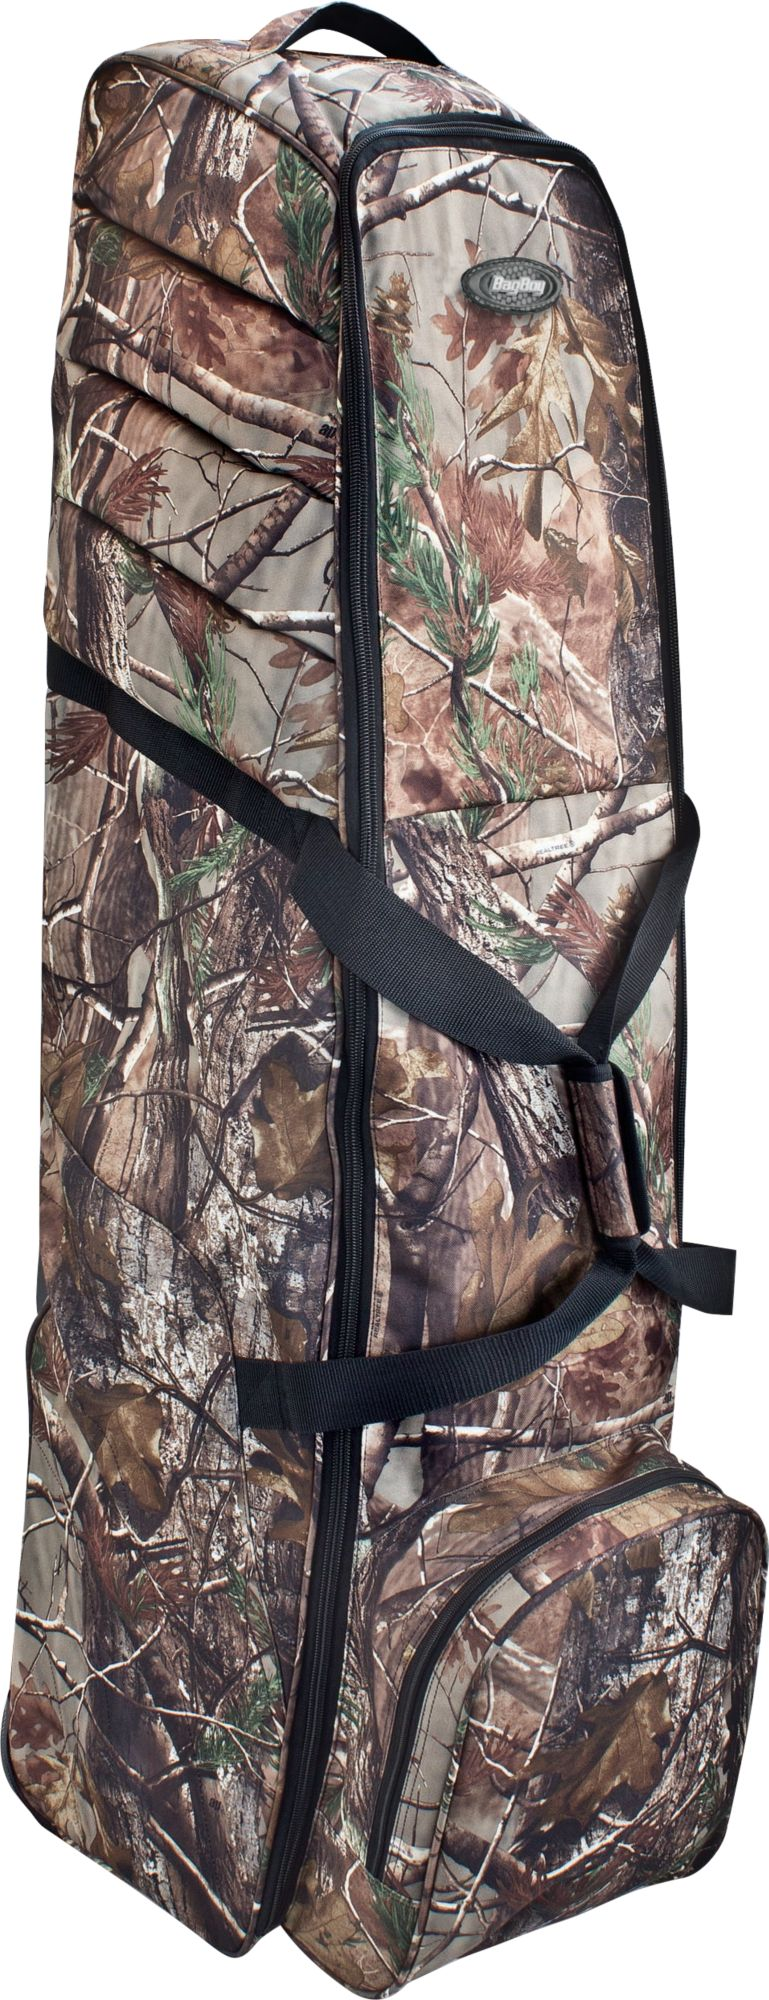 Bagboy T 700 Realtree Camo Travel Cover Limited Edition